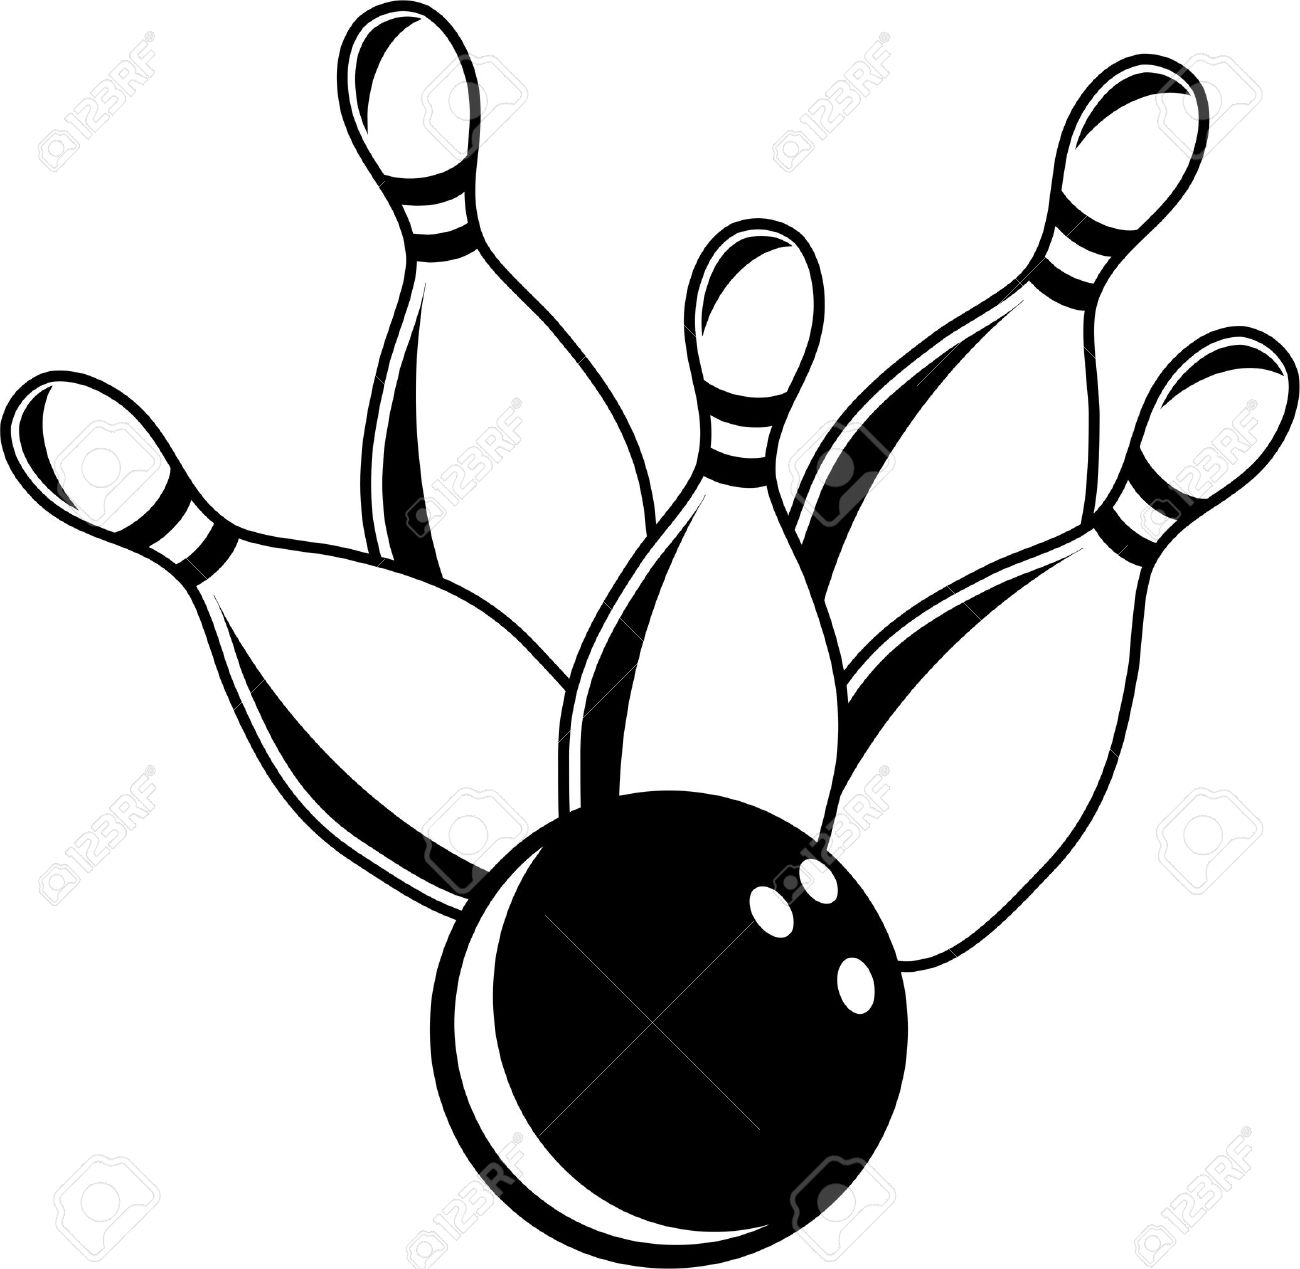 1300x1269 Simple But Bold Black And White Illustration Of Ten Pin Bowling